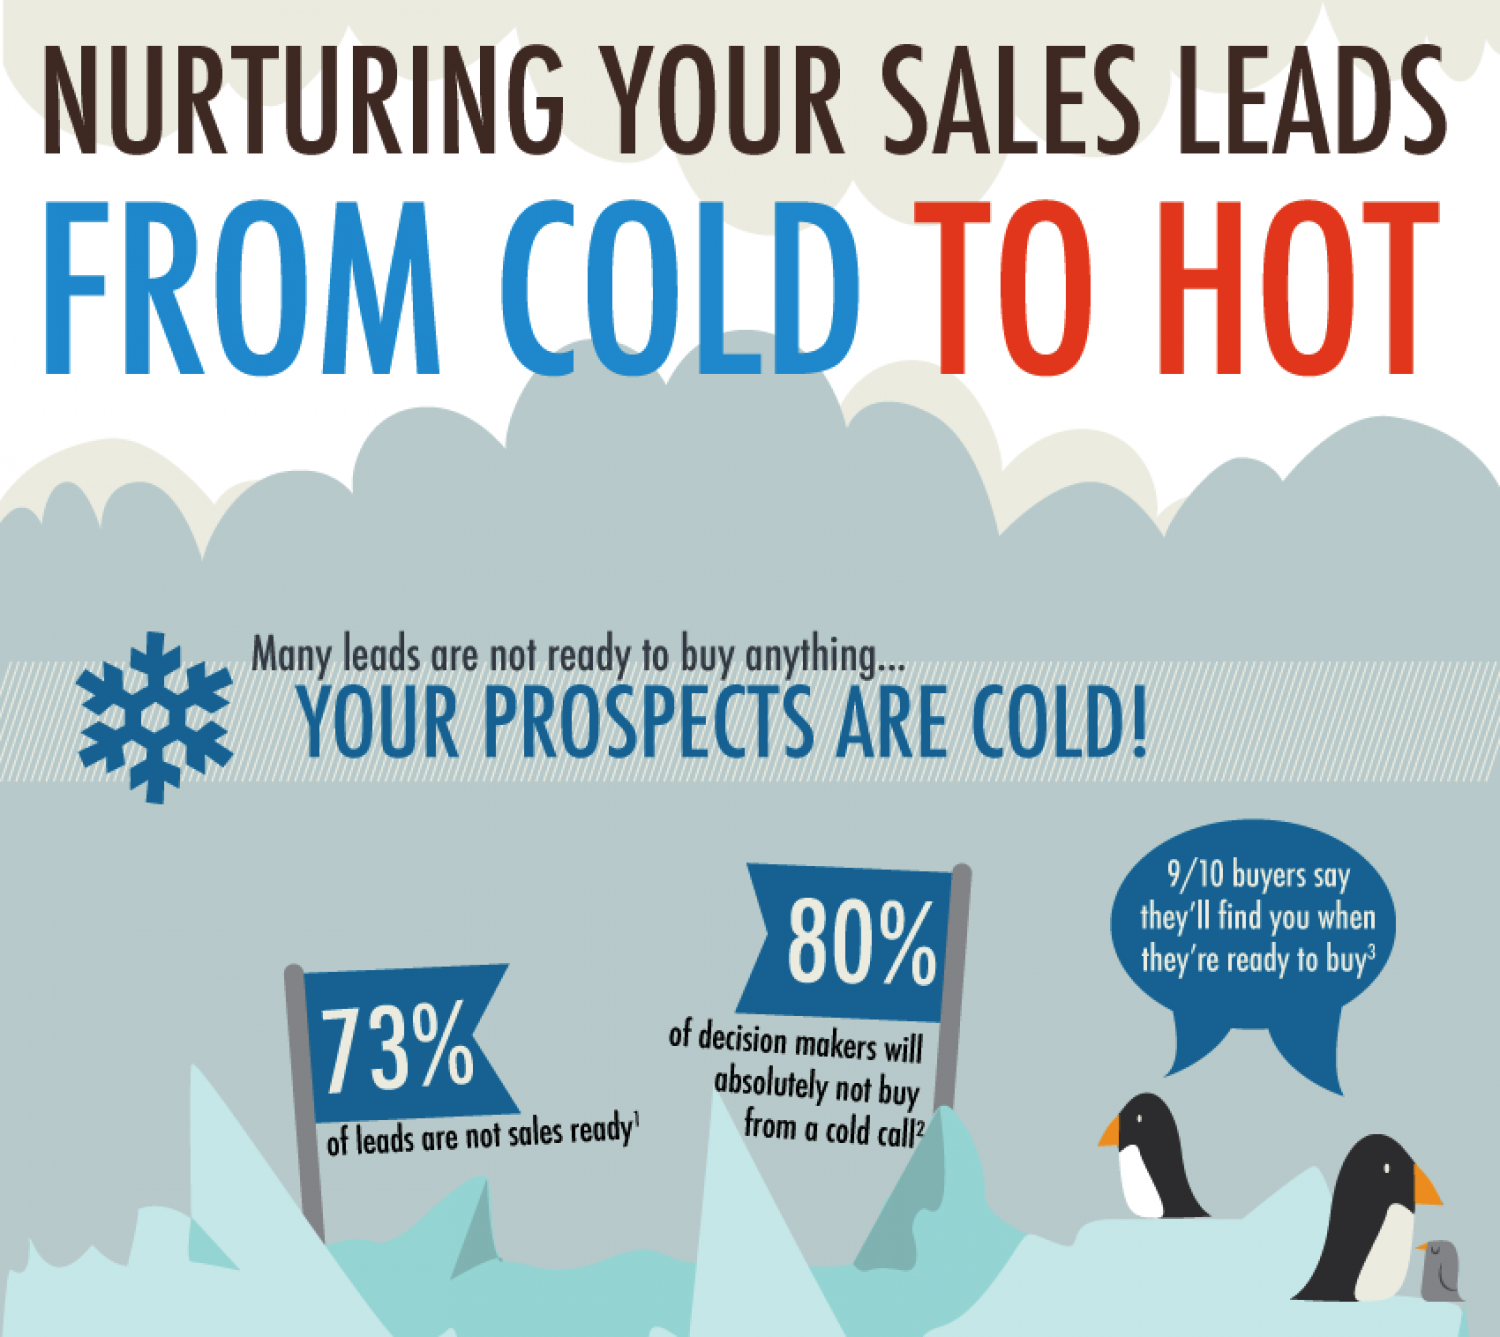 Nurturing Your Sales Leads from Cold to Hot Infographic